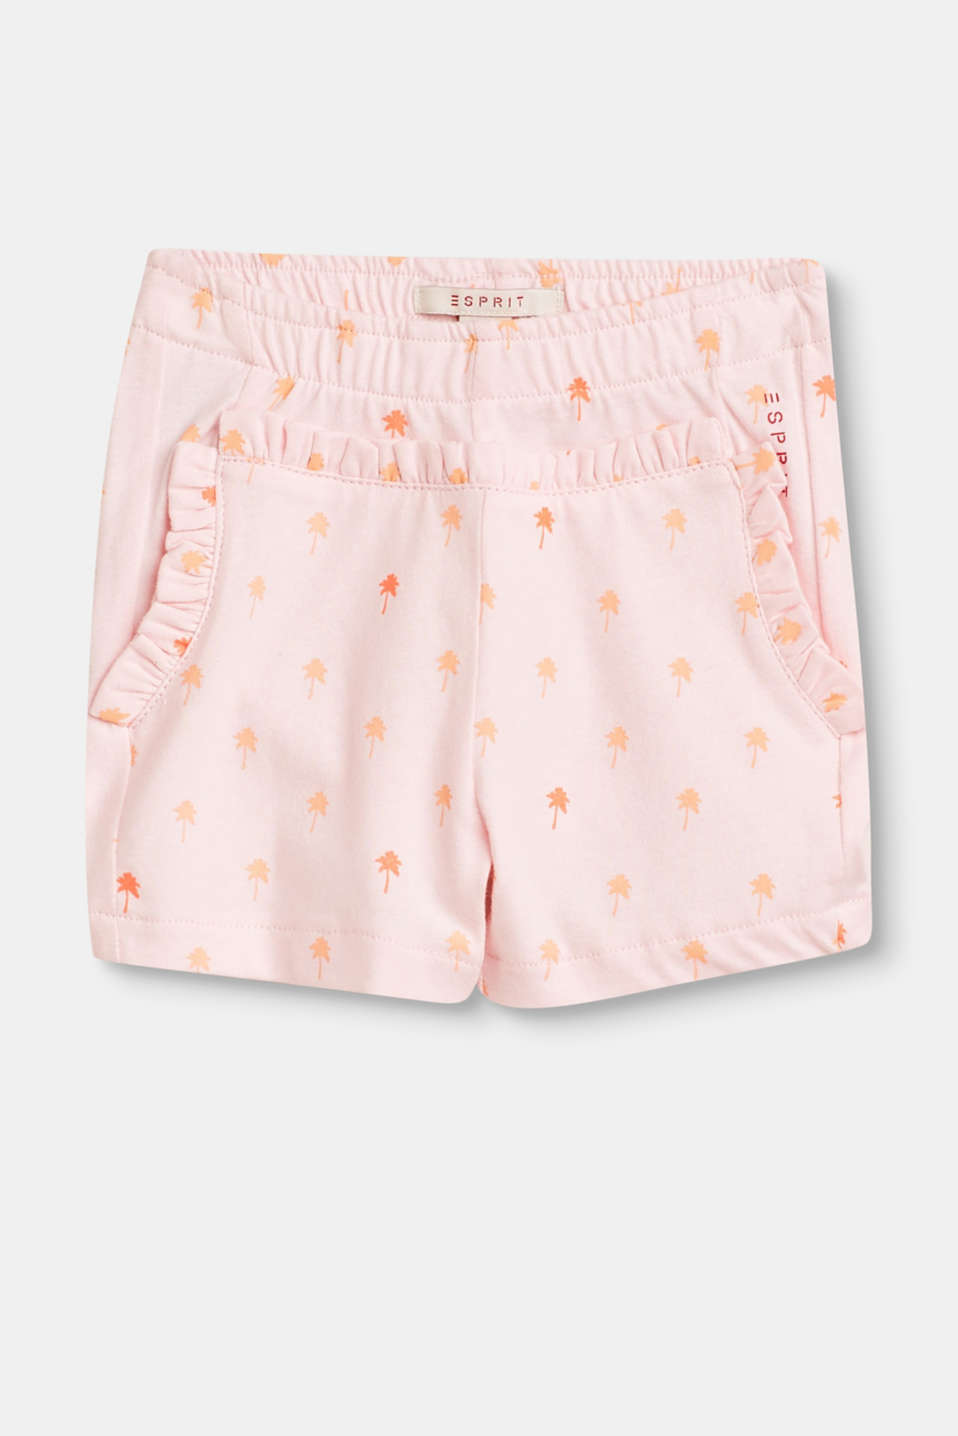 Esprit - Jersey shorts with a print and frills, cotton